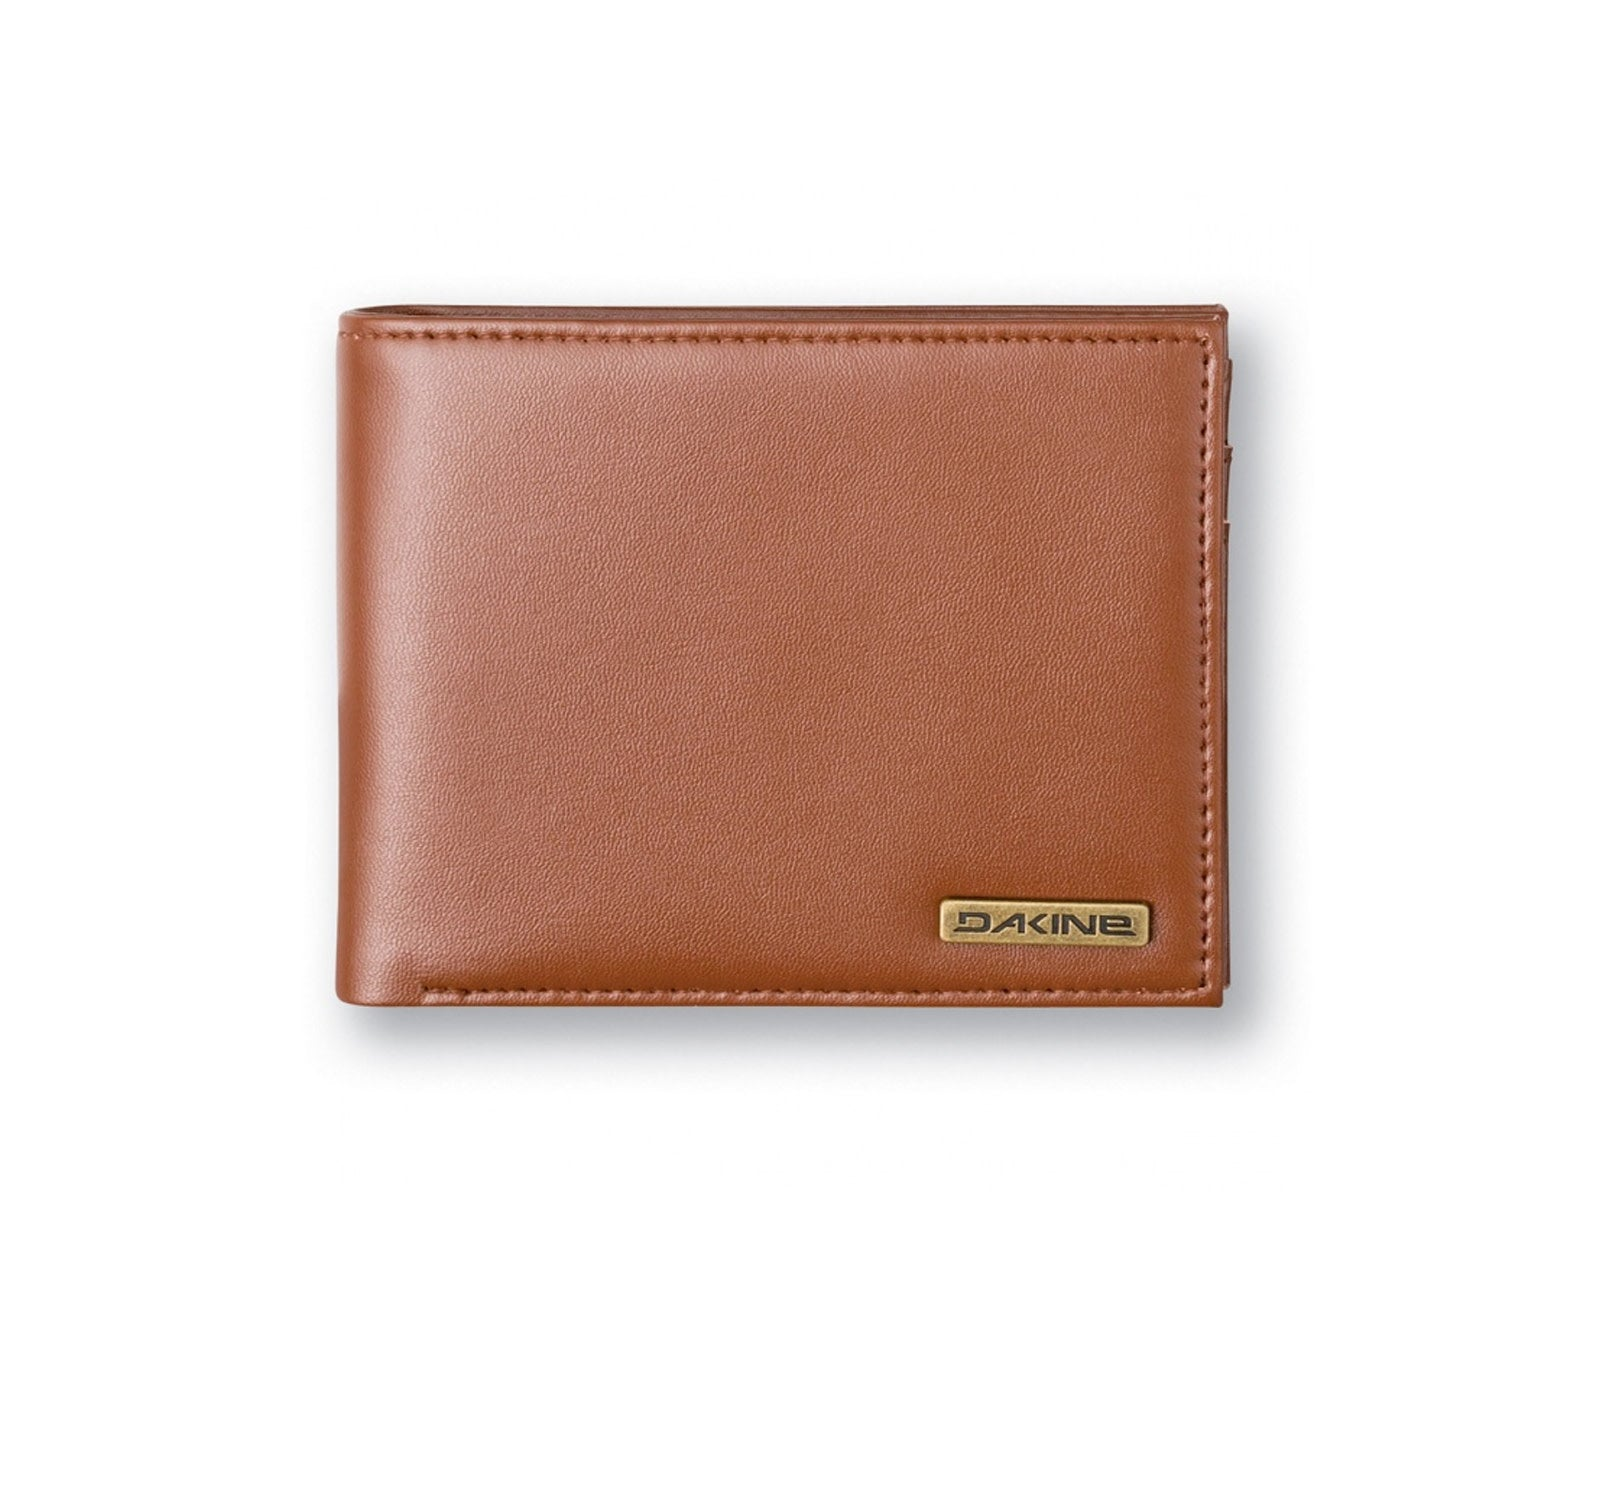 Dakine Archer Coin Wallet - Brown